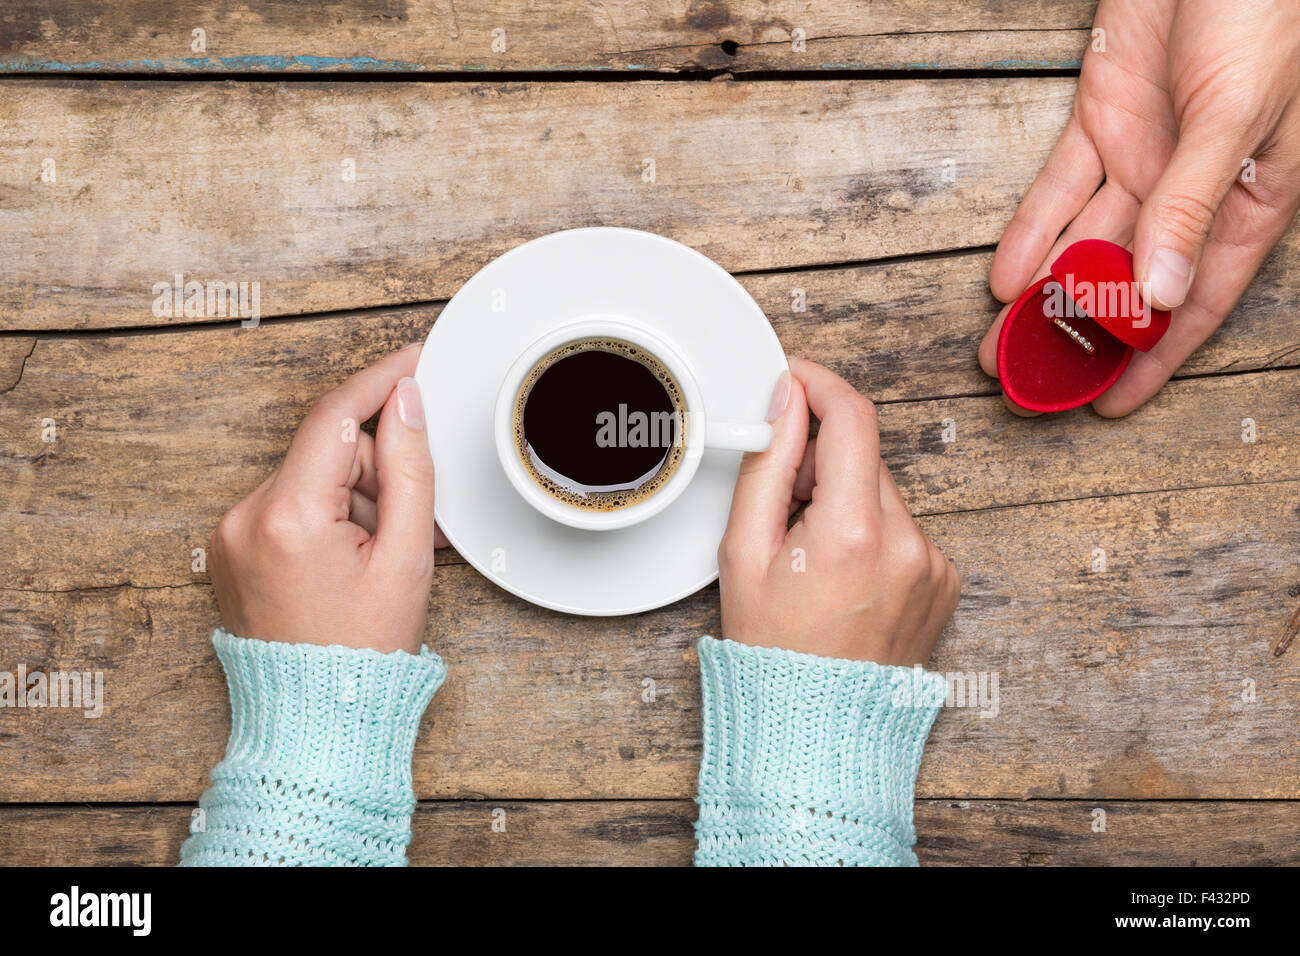 Woman holds cup of coffee and man gives gold ring as a gift for birthday or engagement - Stock Image